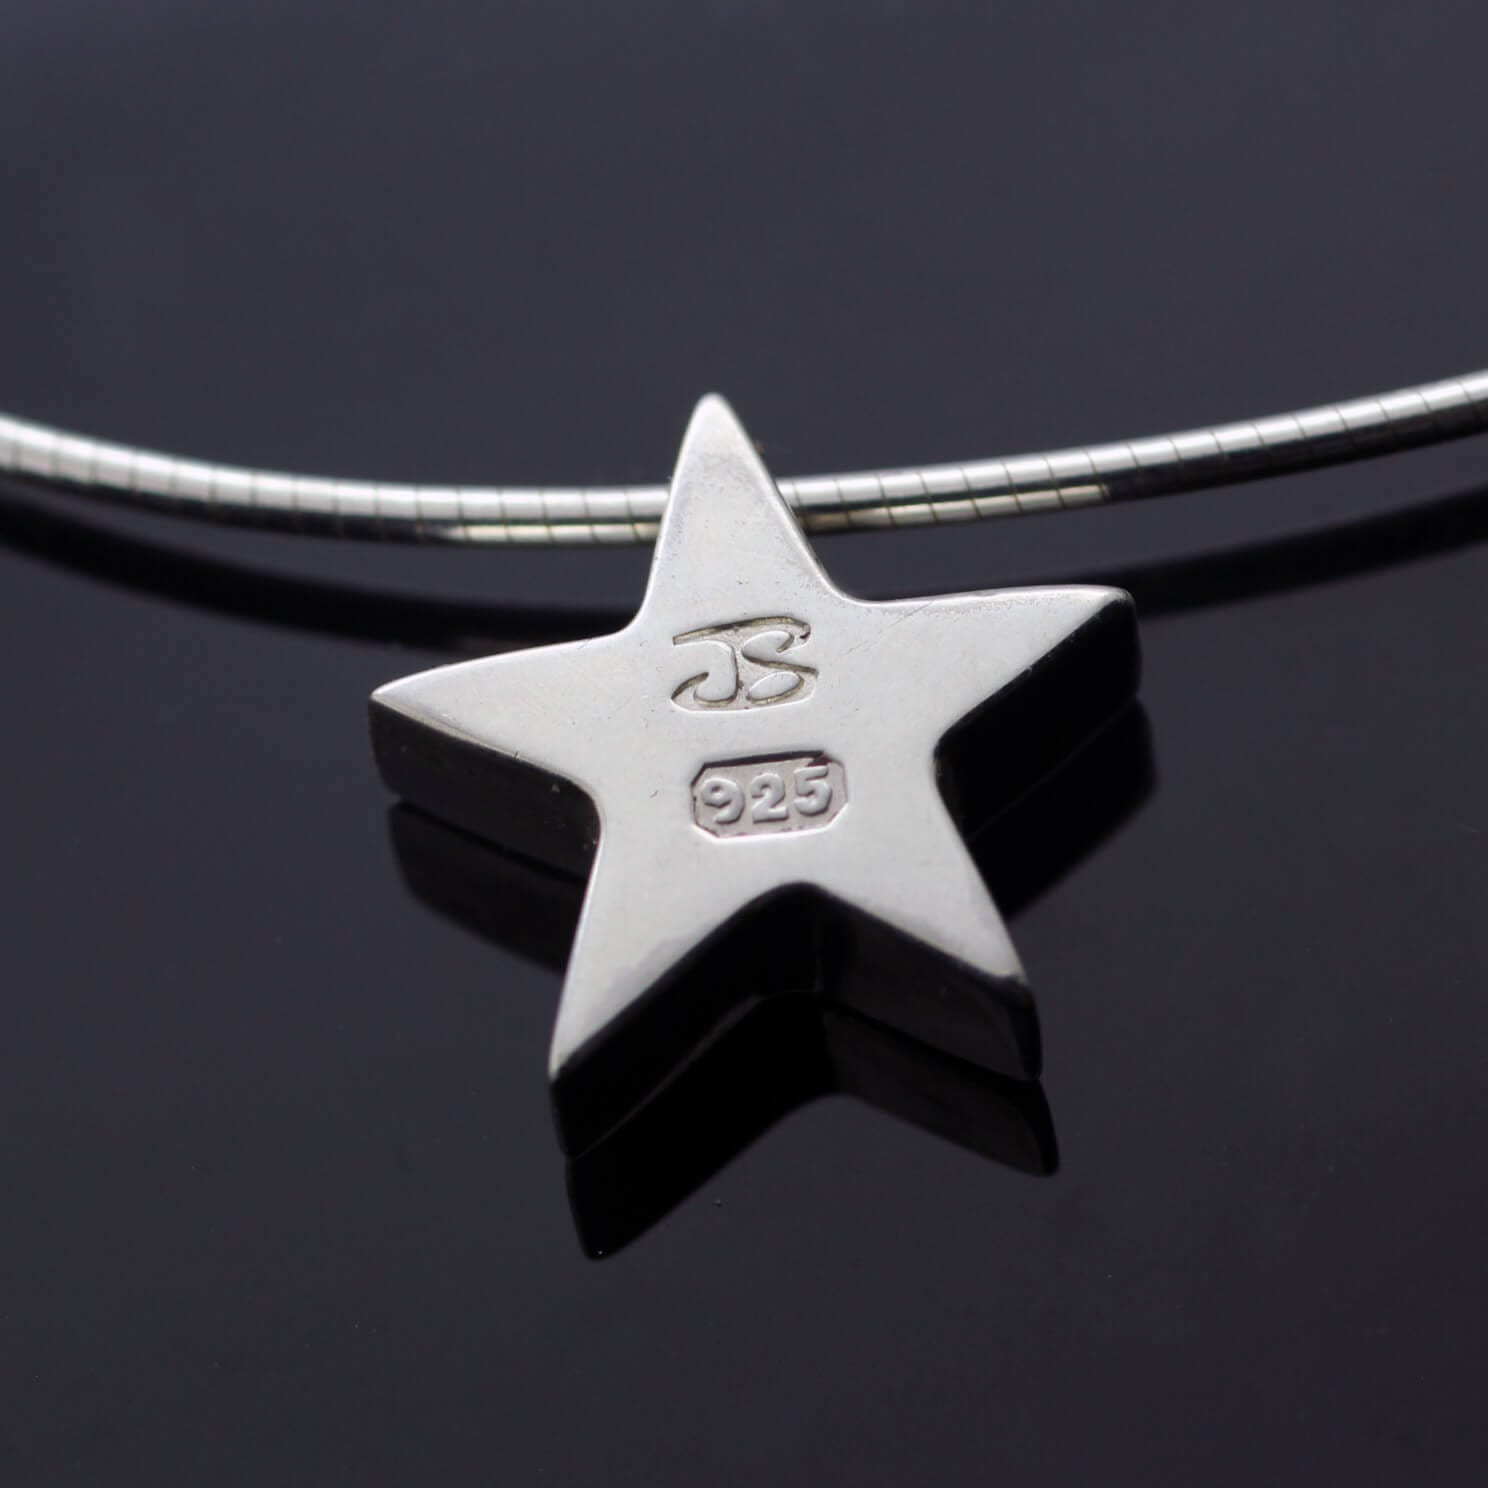 Handmade solid Silver Star contemporary charm